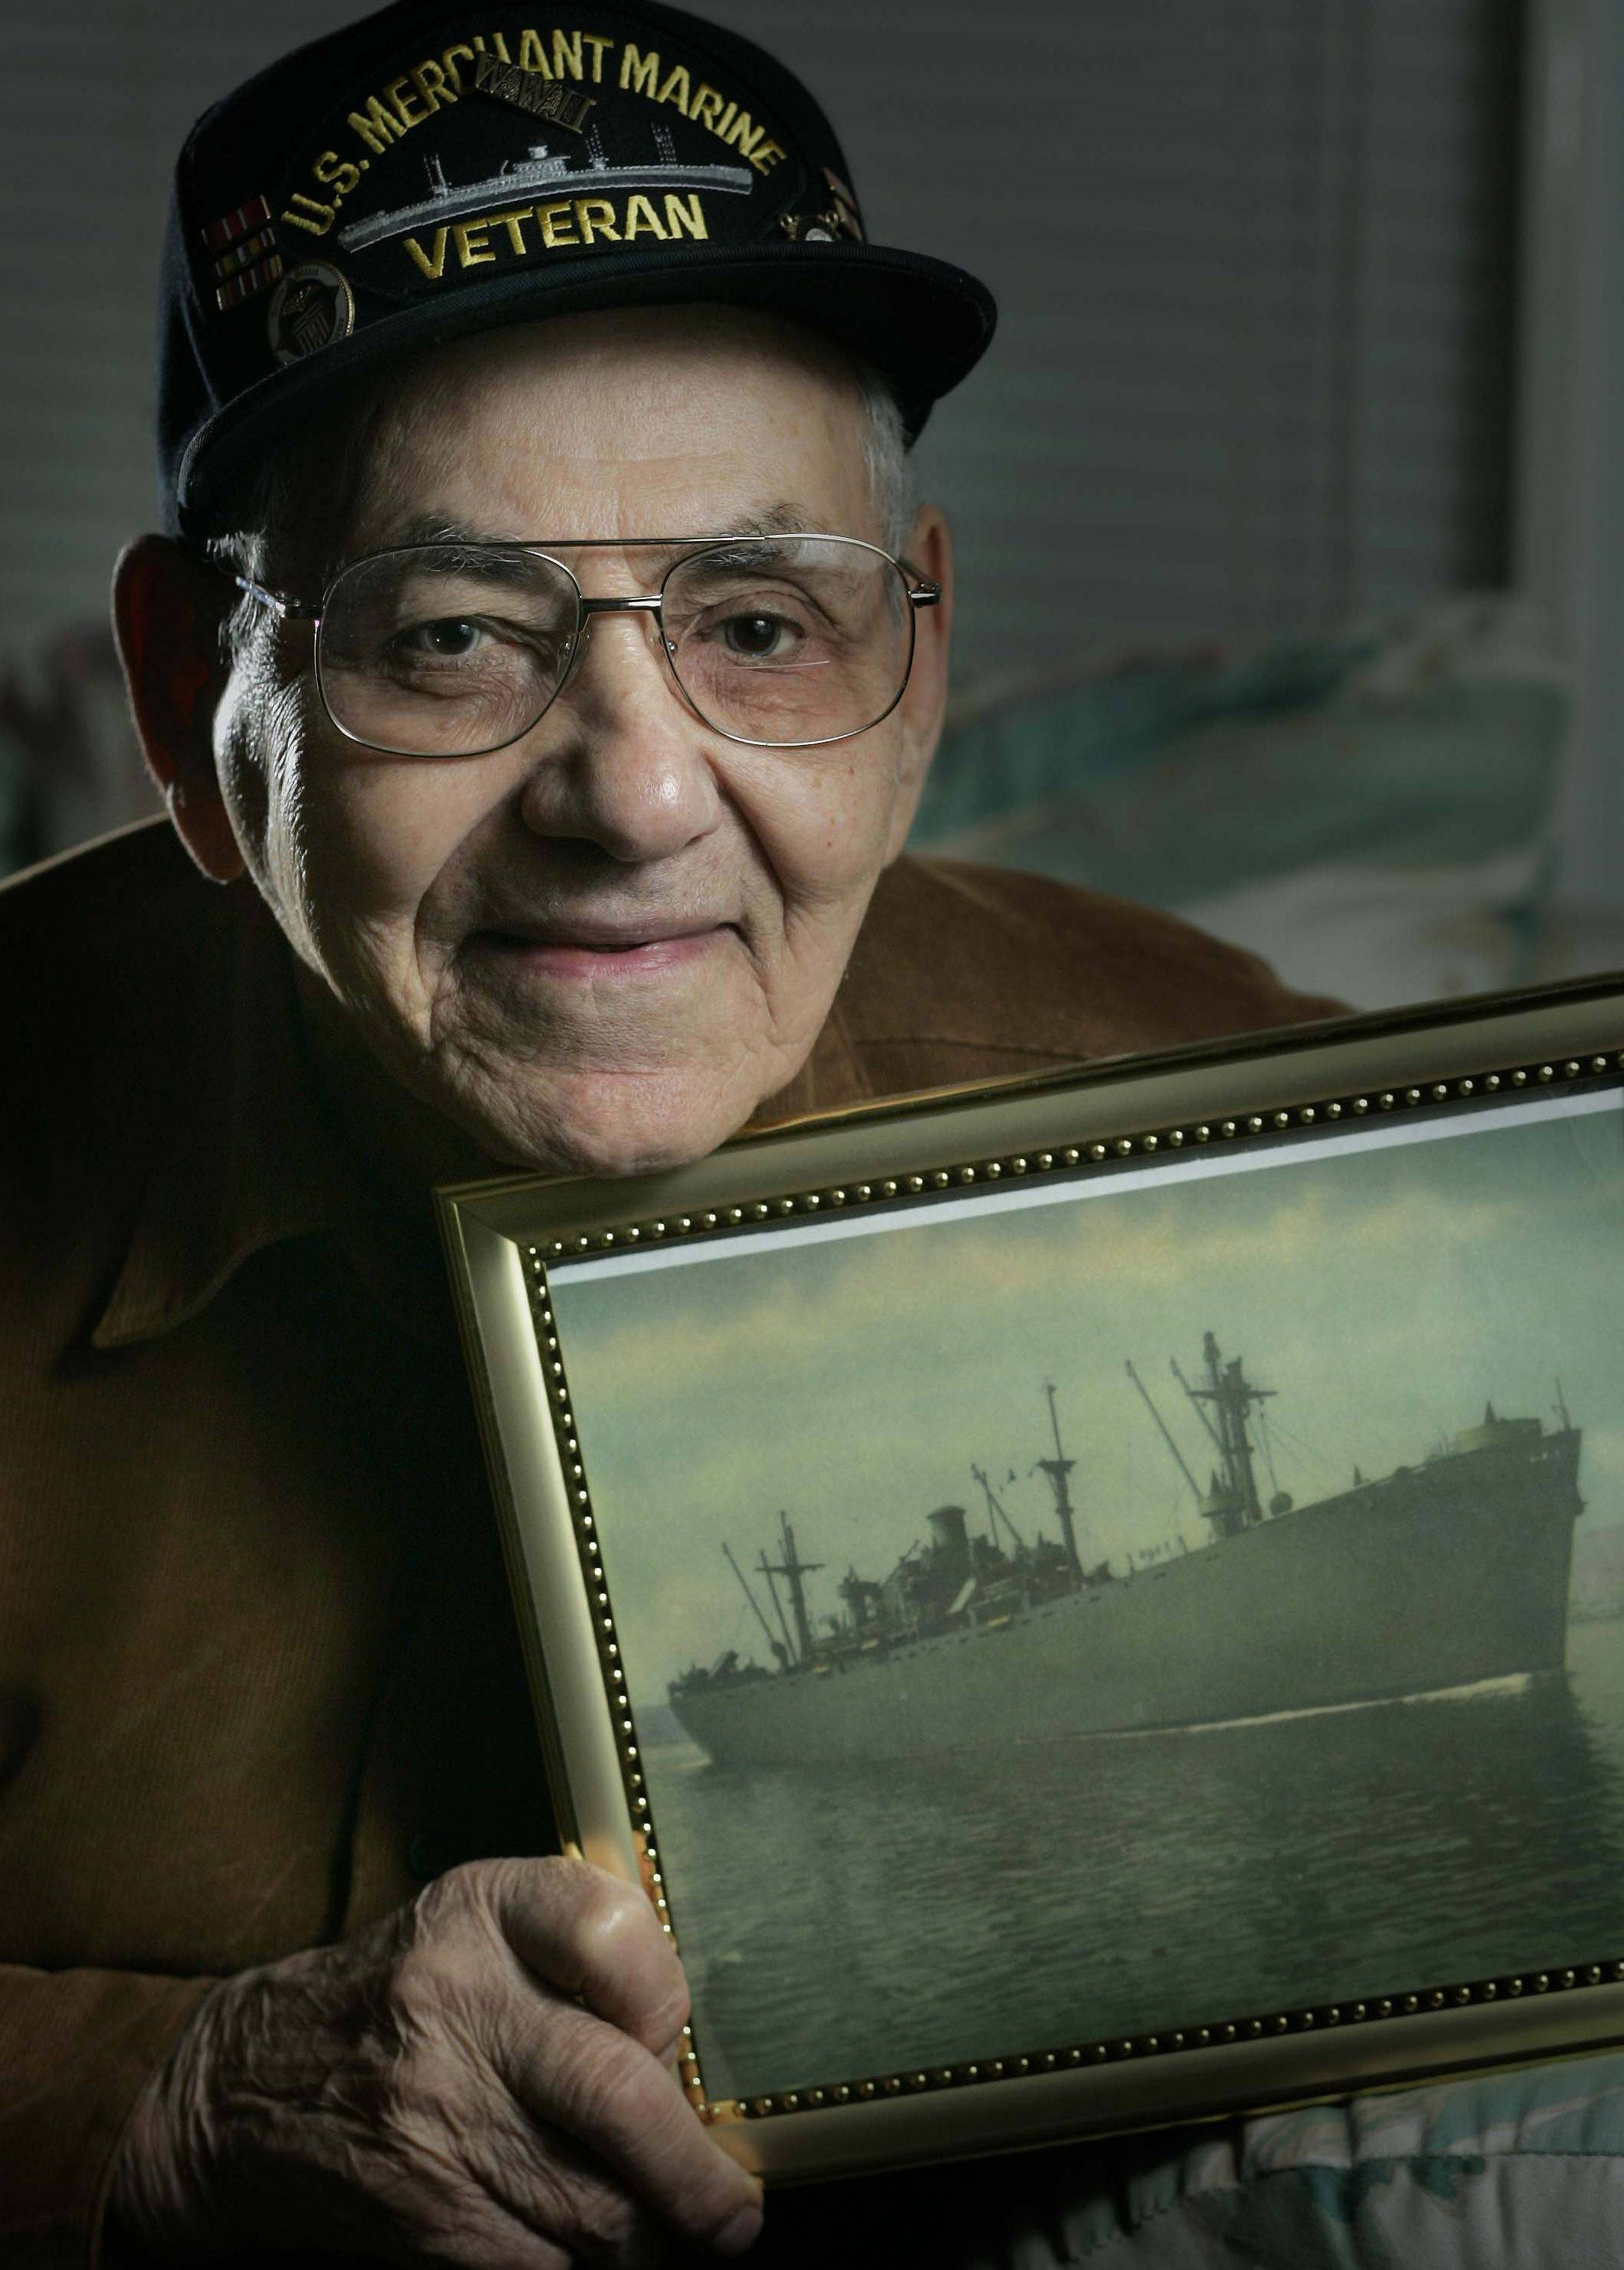 Mike Natale of Elgin signed up for the Merchant Marine when he was just 15 using a phony birth certificate. That landed him square in the middle of World War II. He served until 1948. Natale, who spent some time on this Henry Longfellow boat which is pictured, worked as a carpenter after life as a merchant mariner.